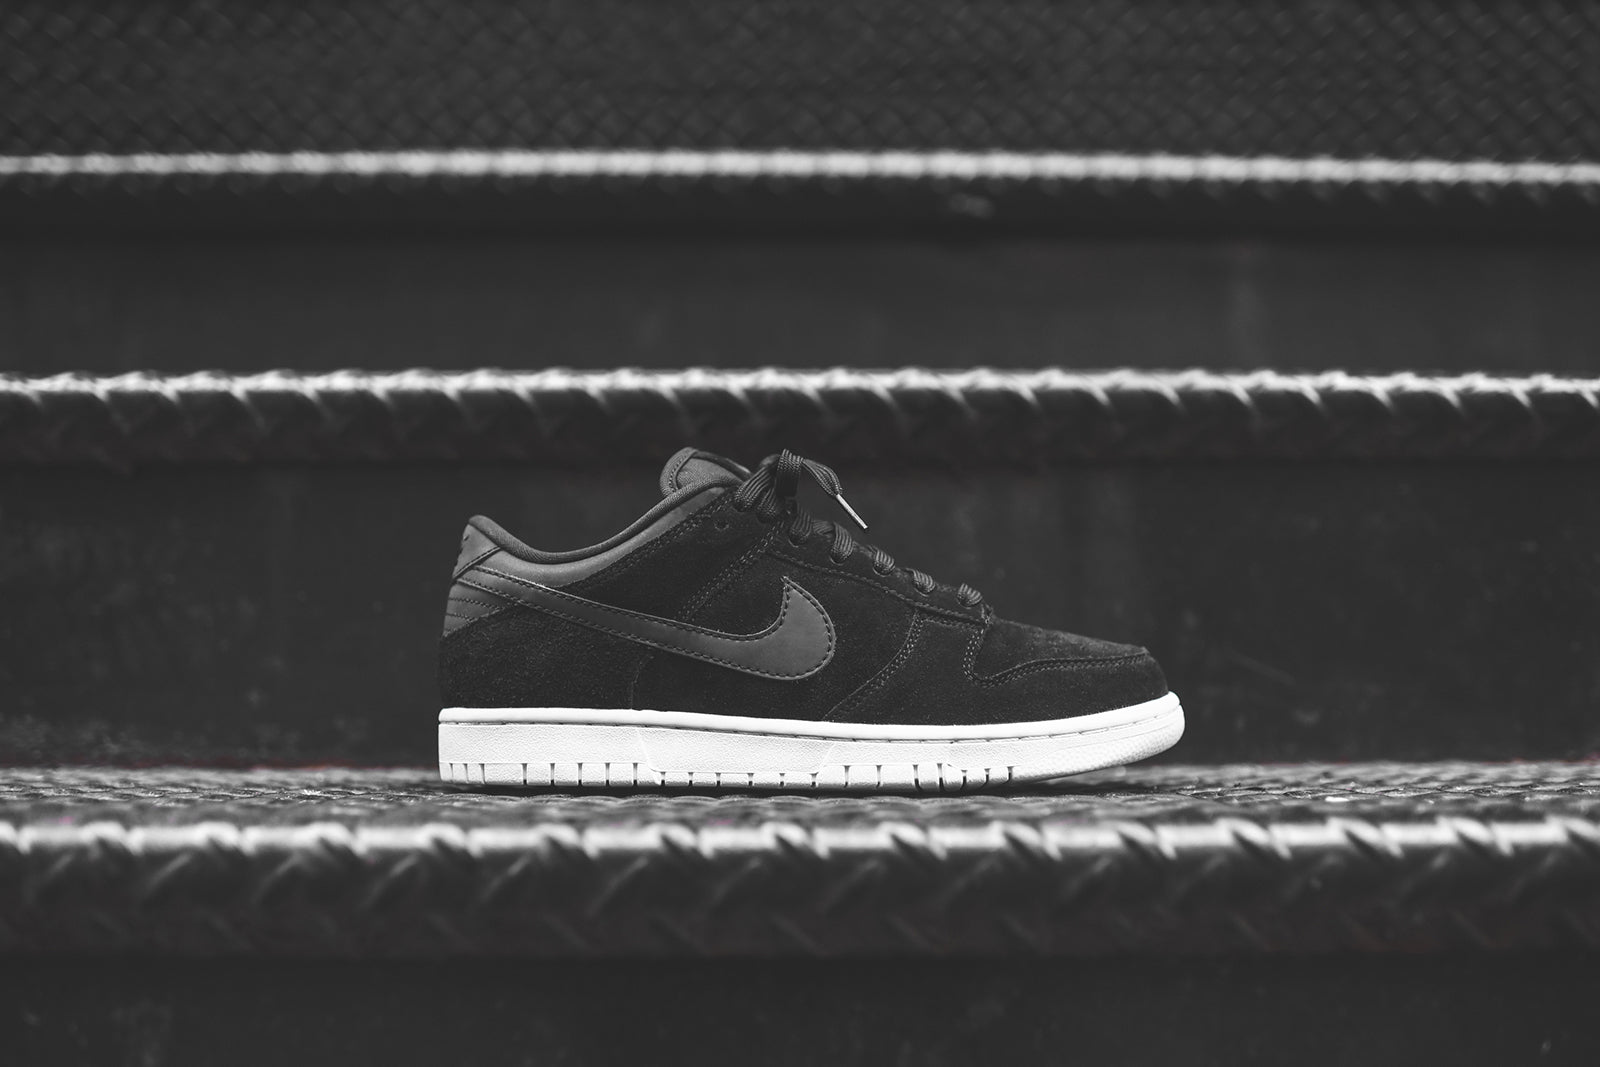 ... nike dunk low prm black